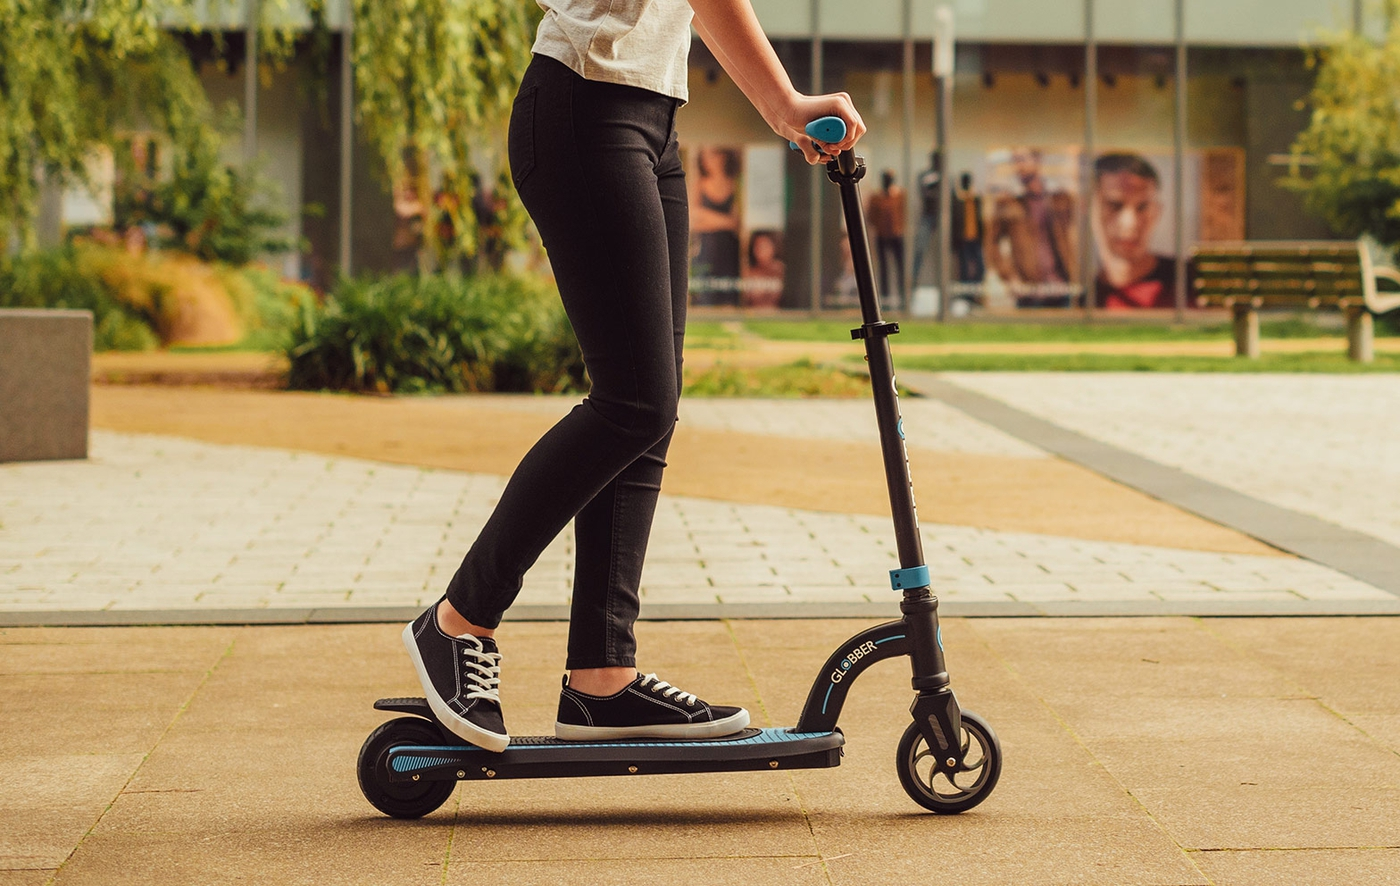 Safe electric scooter for teens and adults with a dual braking system